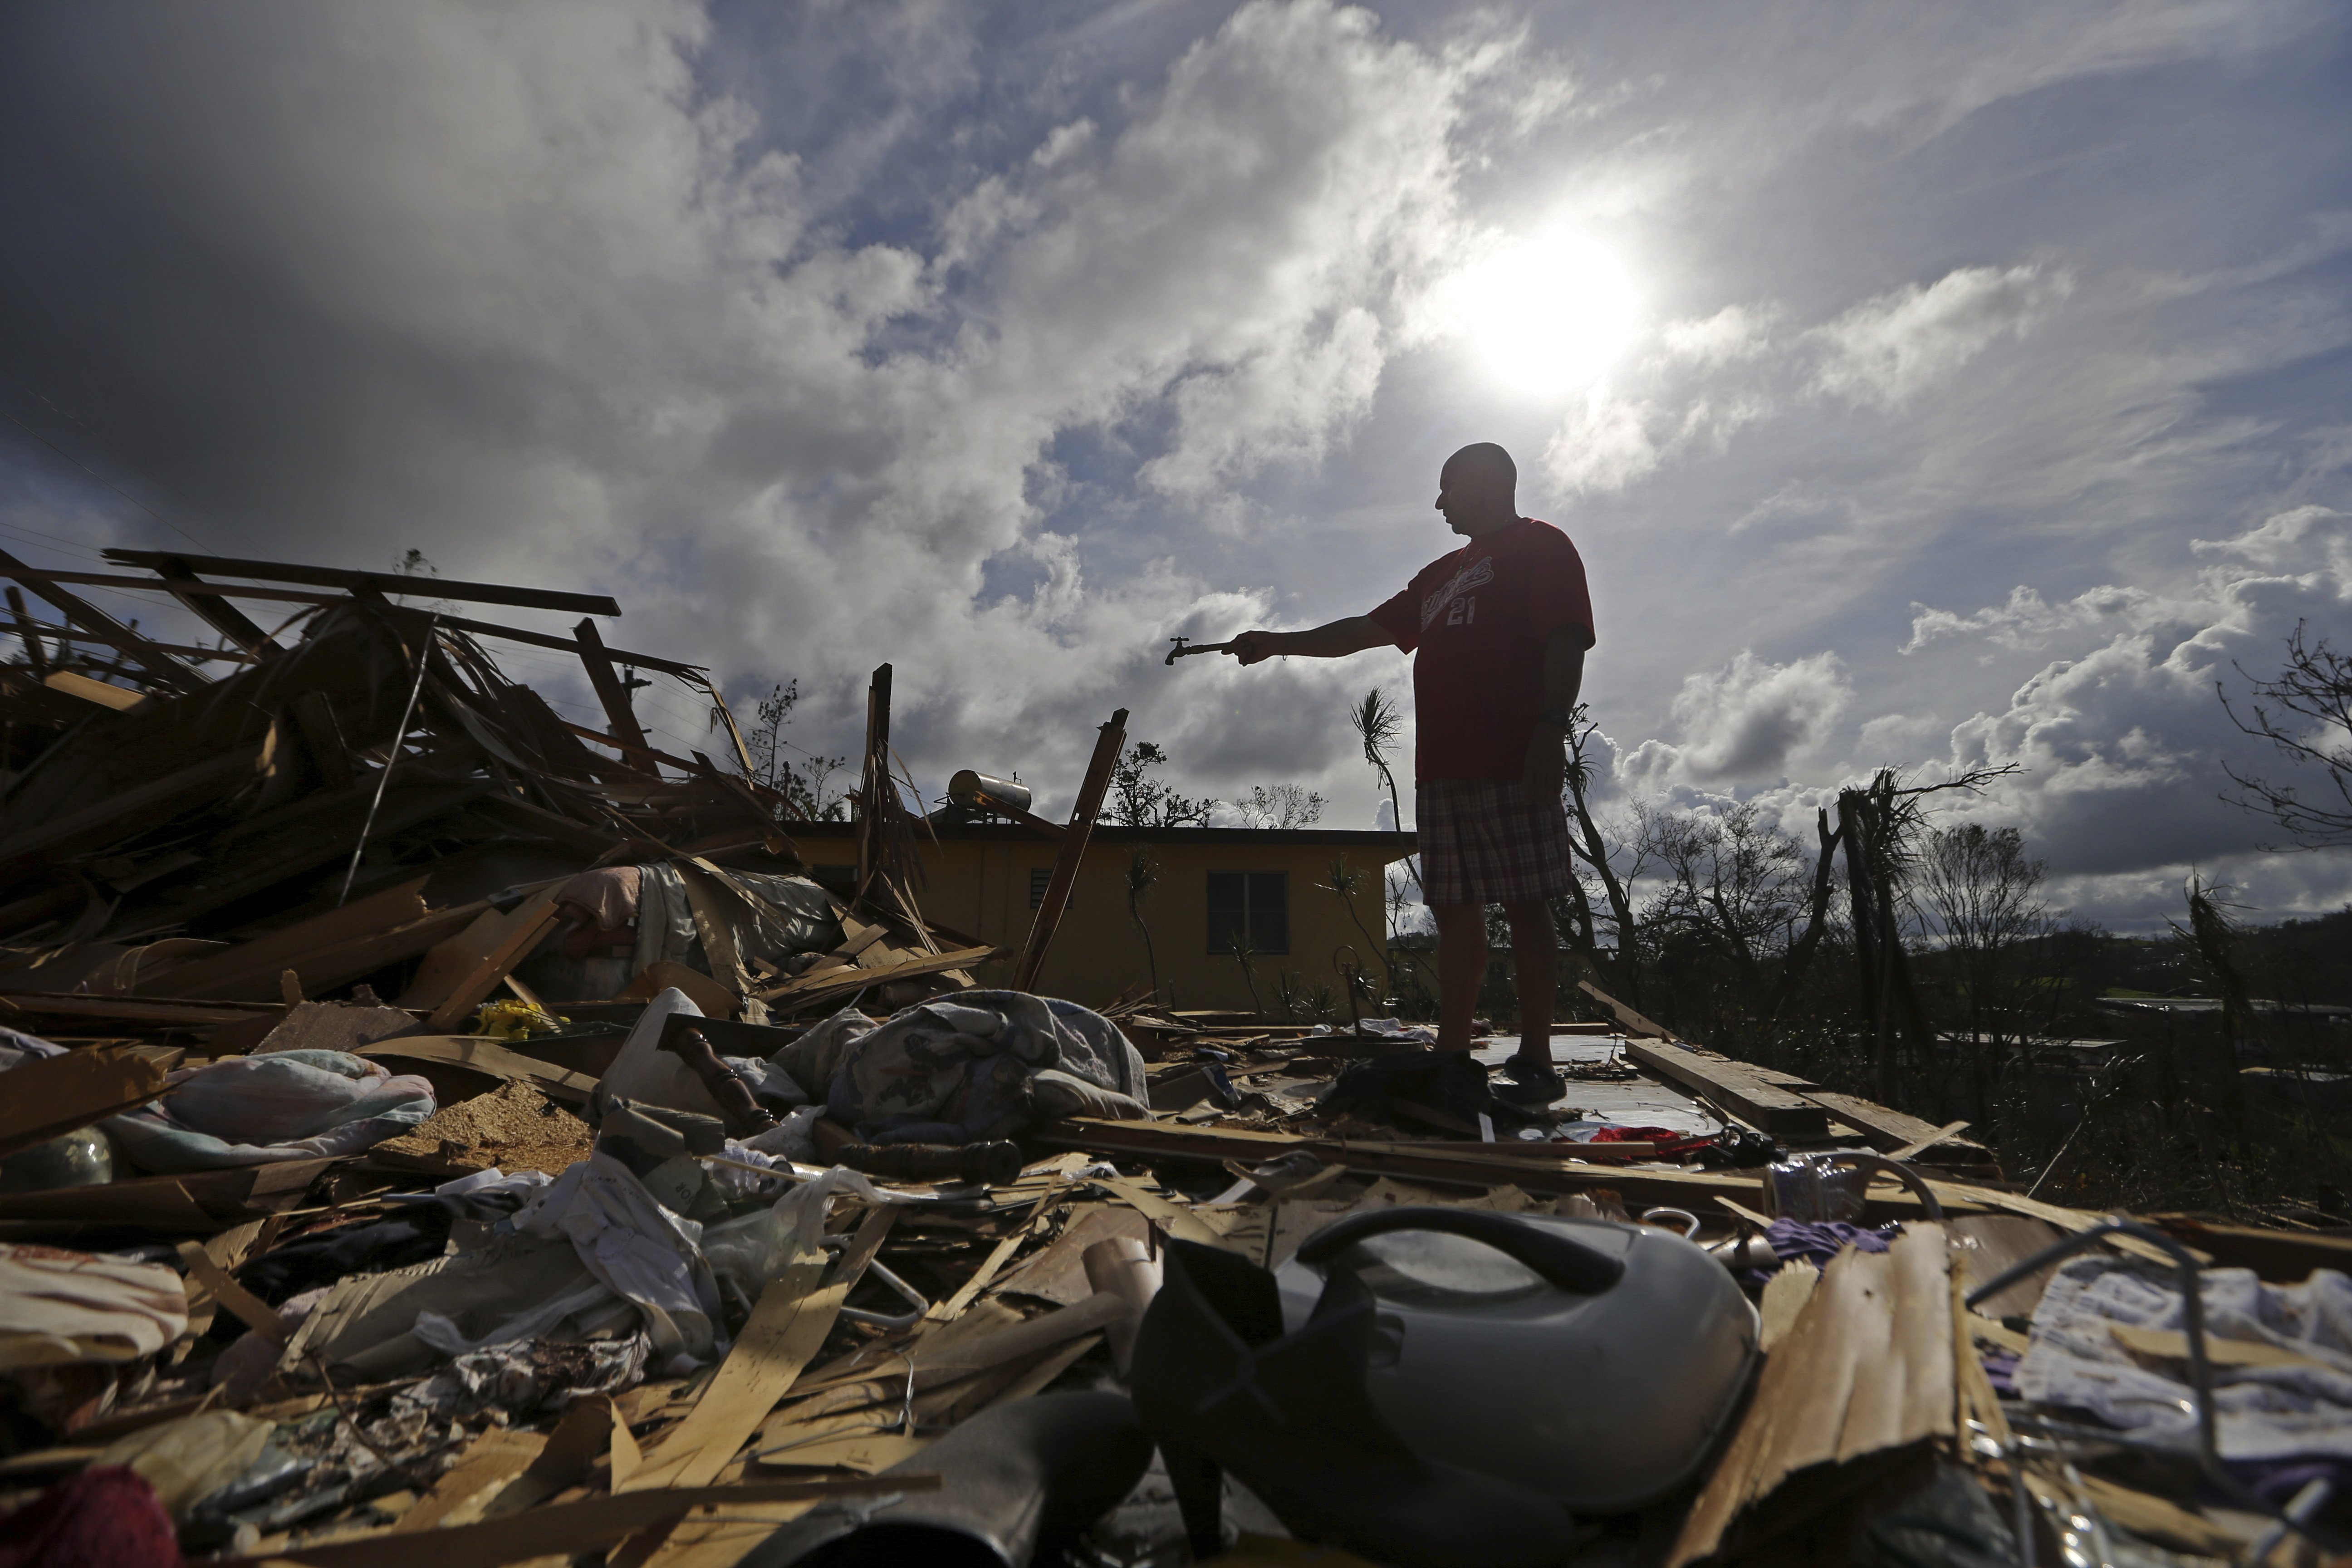 "<div class=""meta image-caption""><div class=""origin-logo origin-image ap""><span>AP</span></div><span class=""caption-text"">Hurricane Maria hit Puerto Rico, leaving behind devastation and more than 1 million without power (AP Photo/Gerald Herbert))</span></div>"